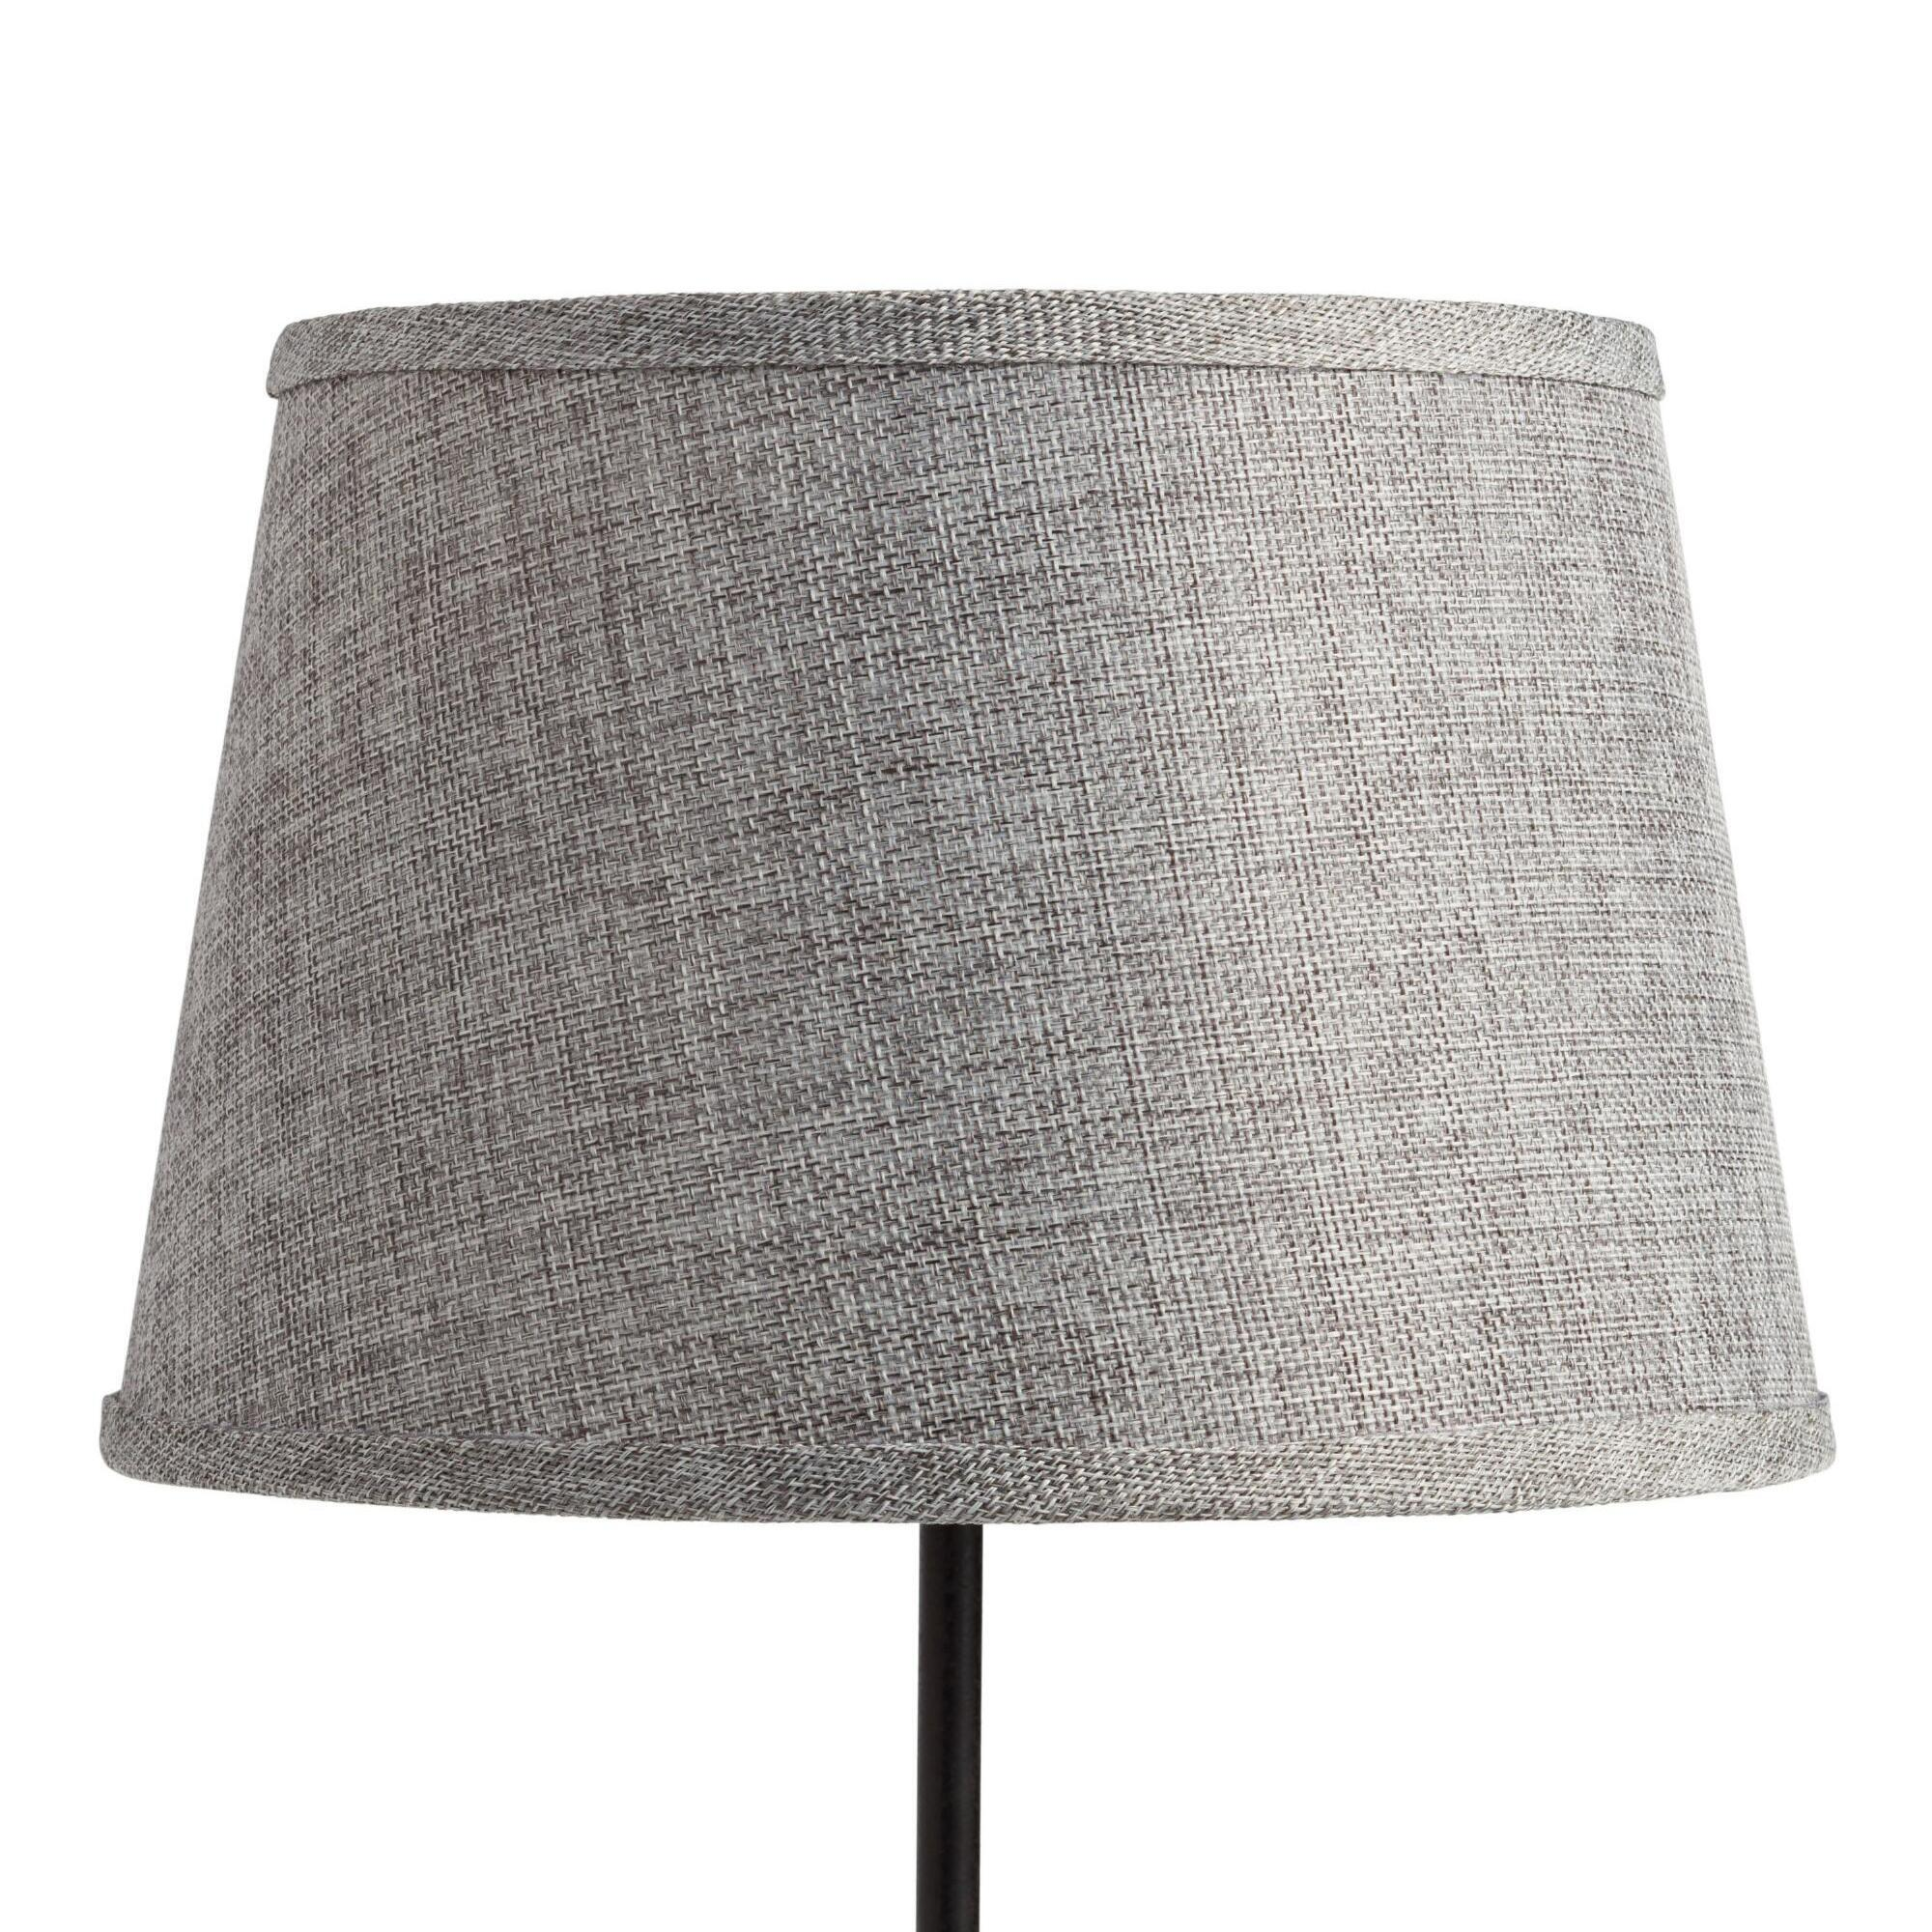 Gray Linen Accent Lamp Shade by World Market